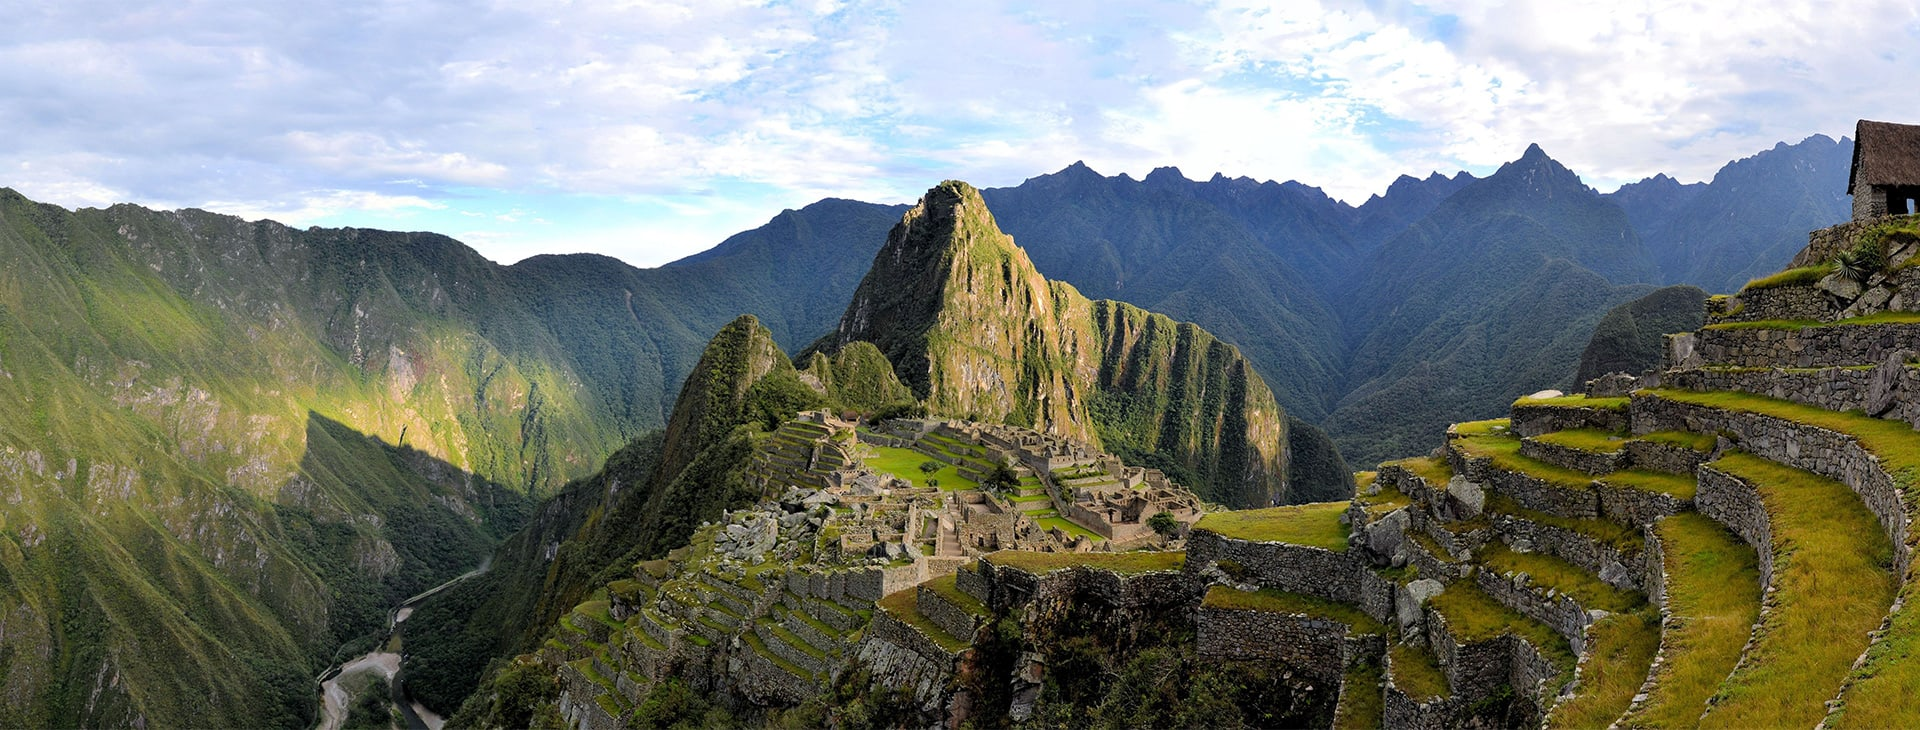 Machu Picchu with Andenes Ruins